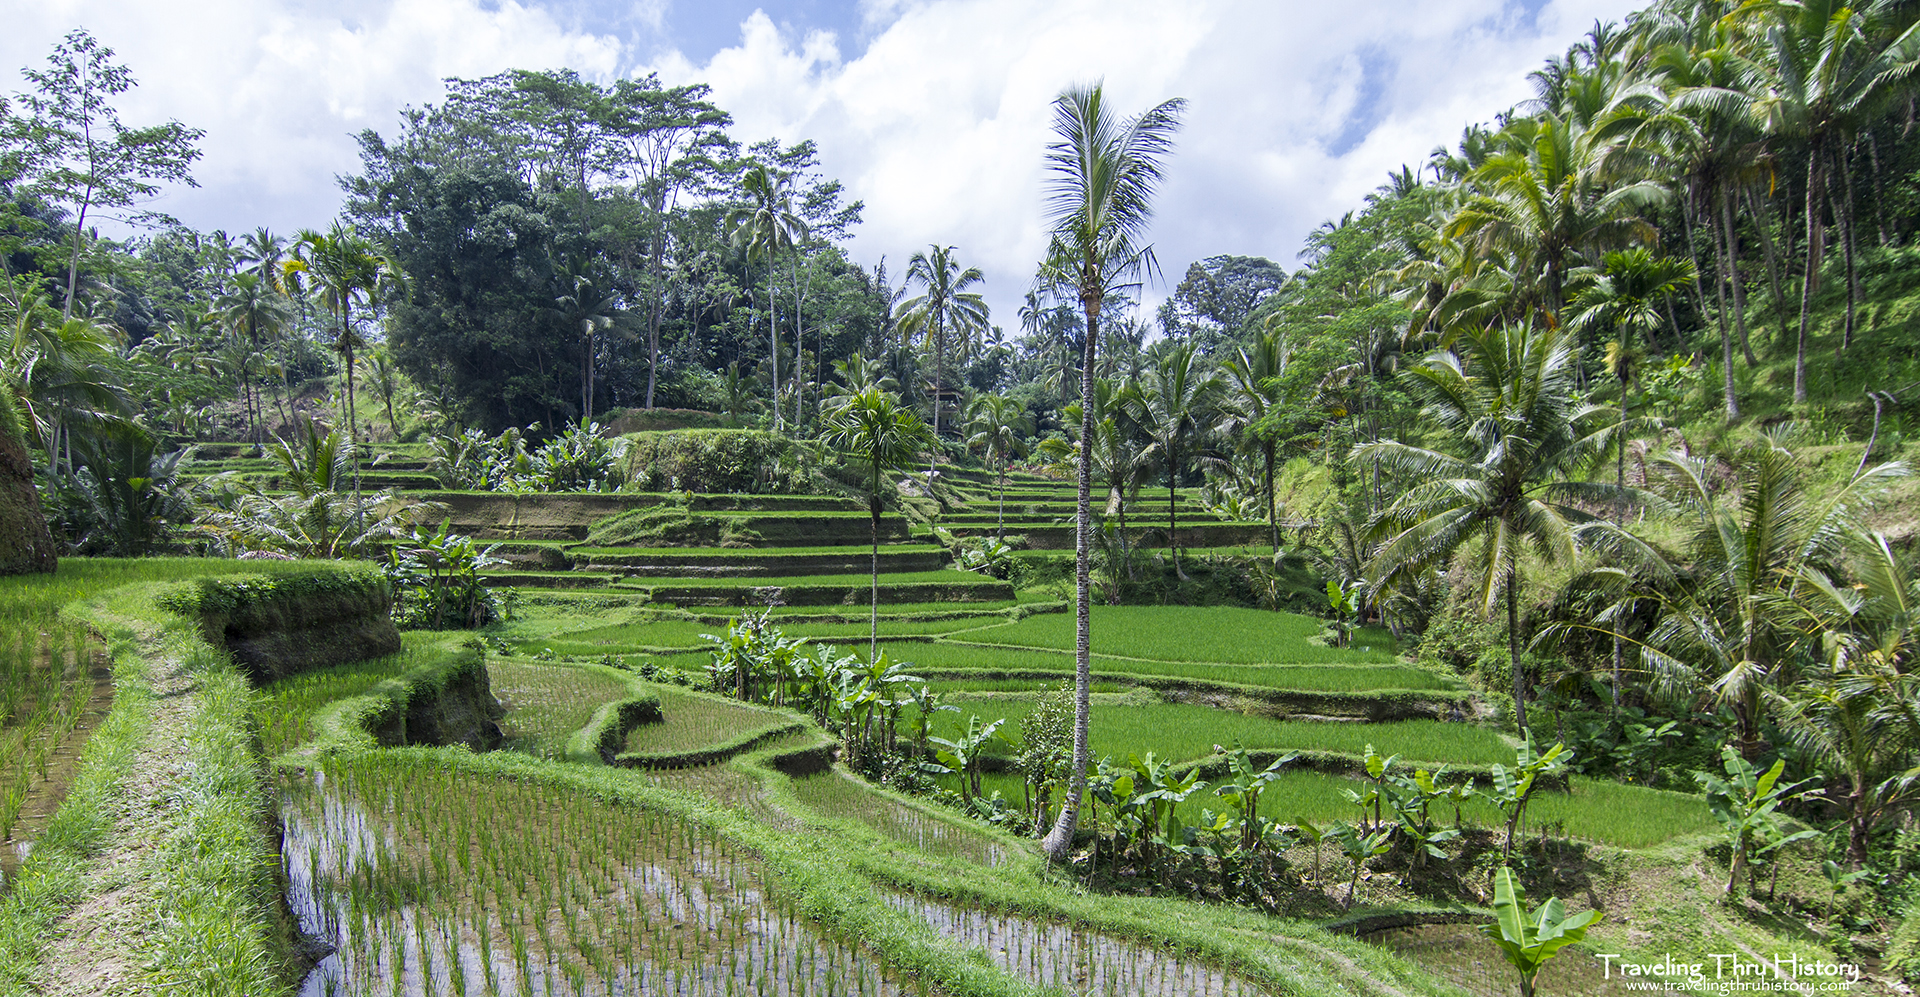 photo essay the terraced rice fields of bali we were under the impression that there was only one area where the terraced rice fields were and thought it was further away